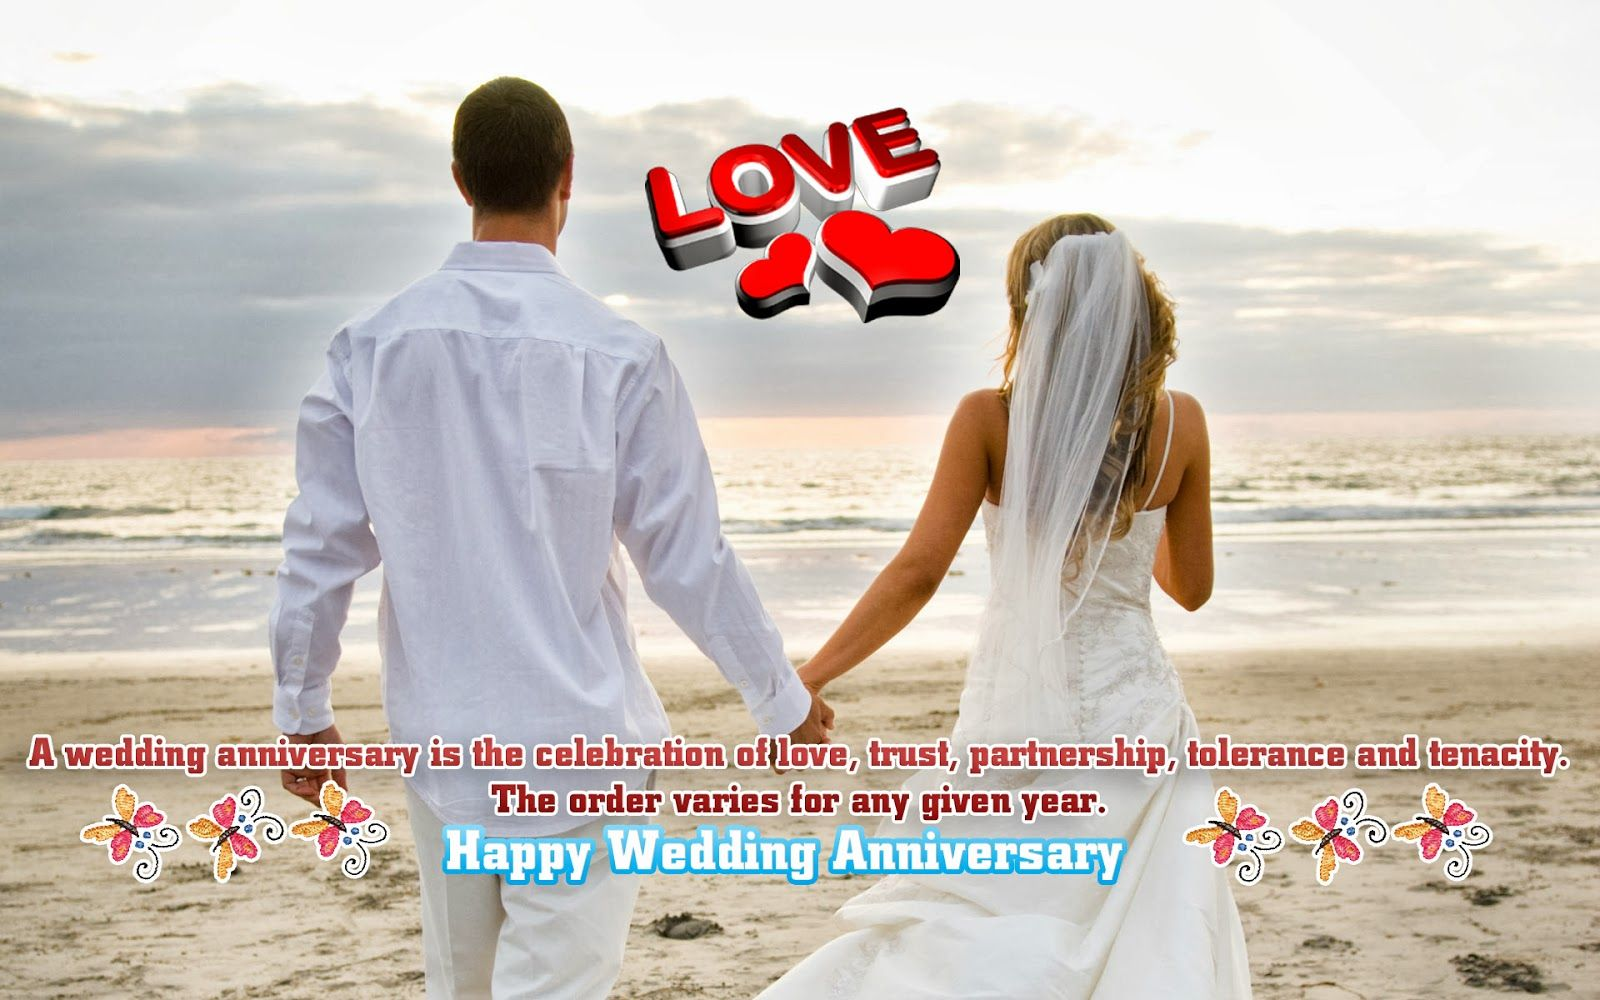 Wallpaper download marriage anniversary - 1st Wedding Anniversary Wishes Wallpapers